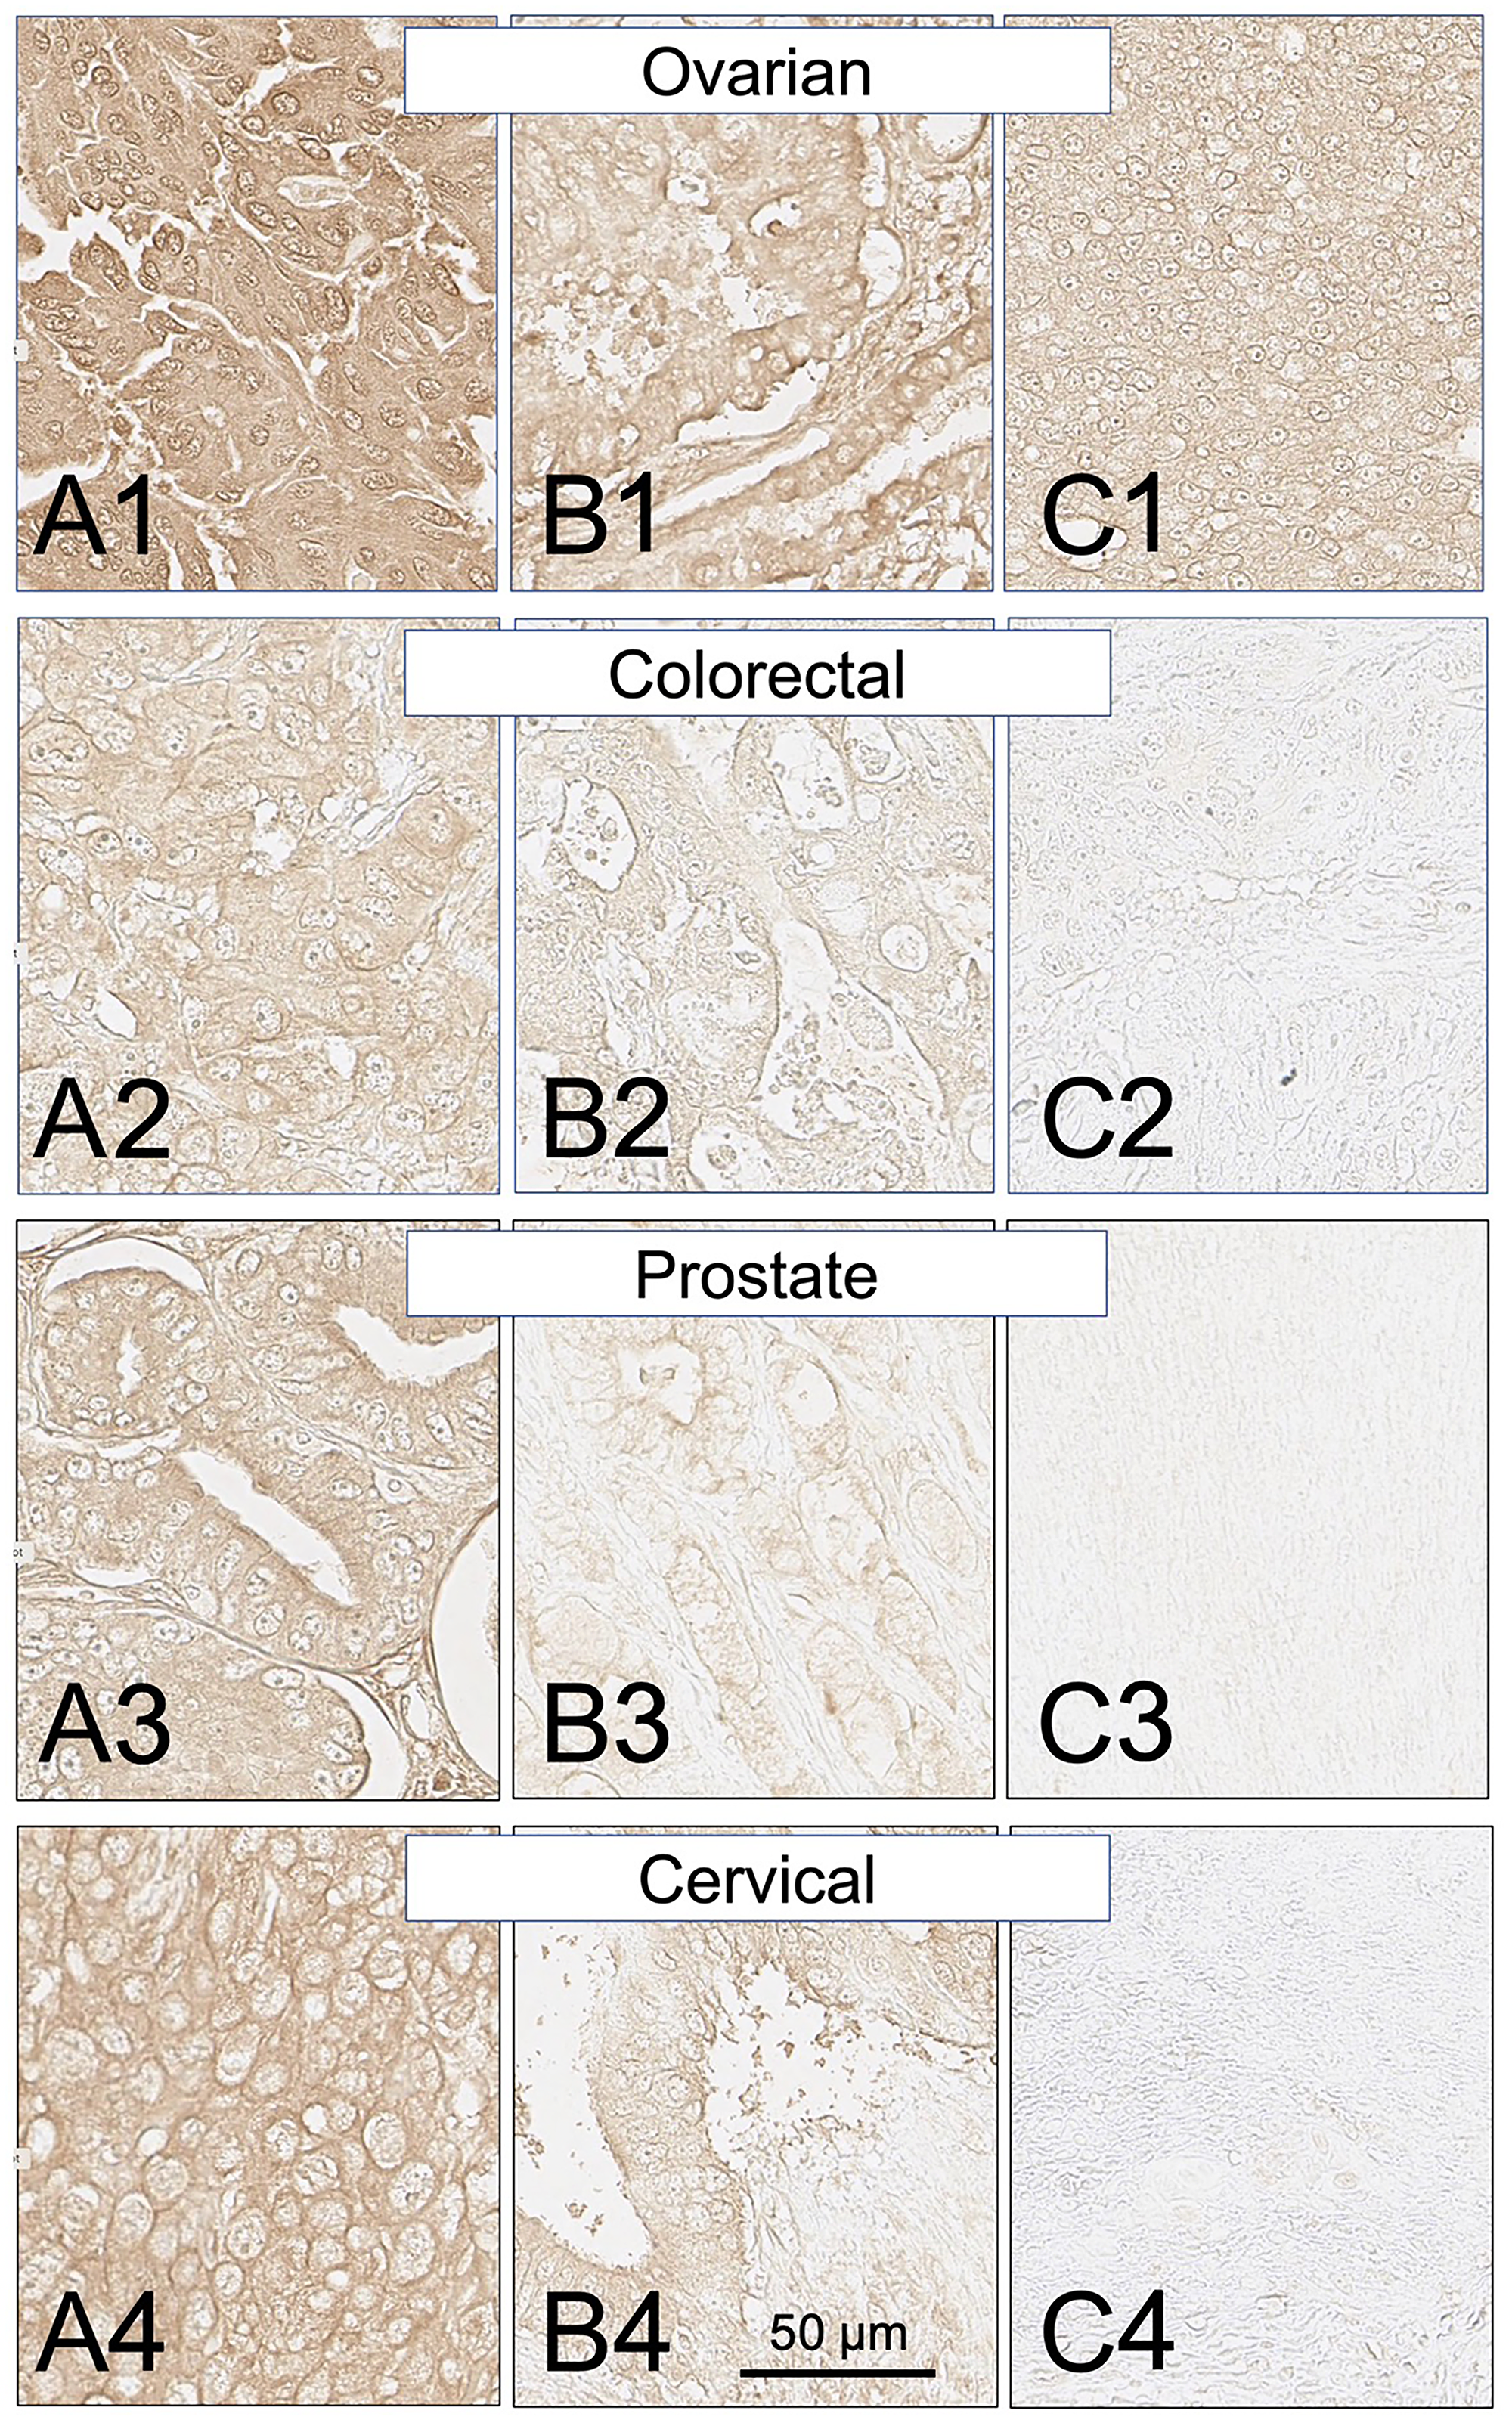 SH7129 stained sections of representative ovarian, colorectal, prostate, and cervical cancers expressing HLA-DRs targeted by SH7139.